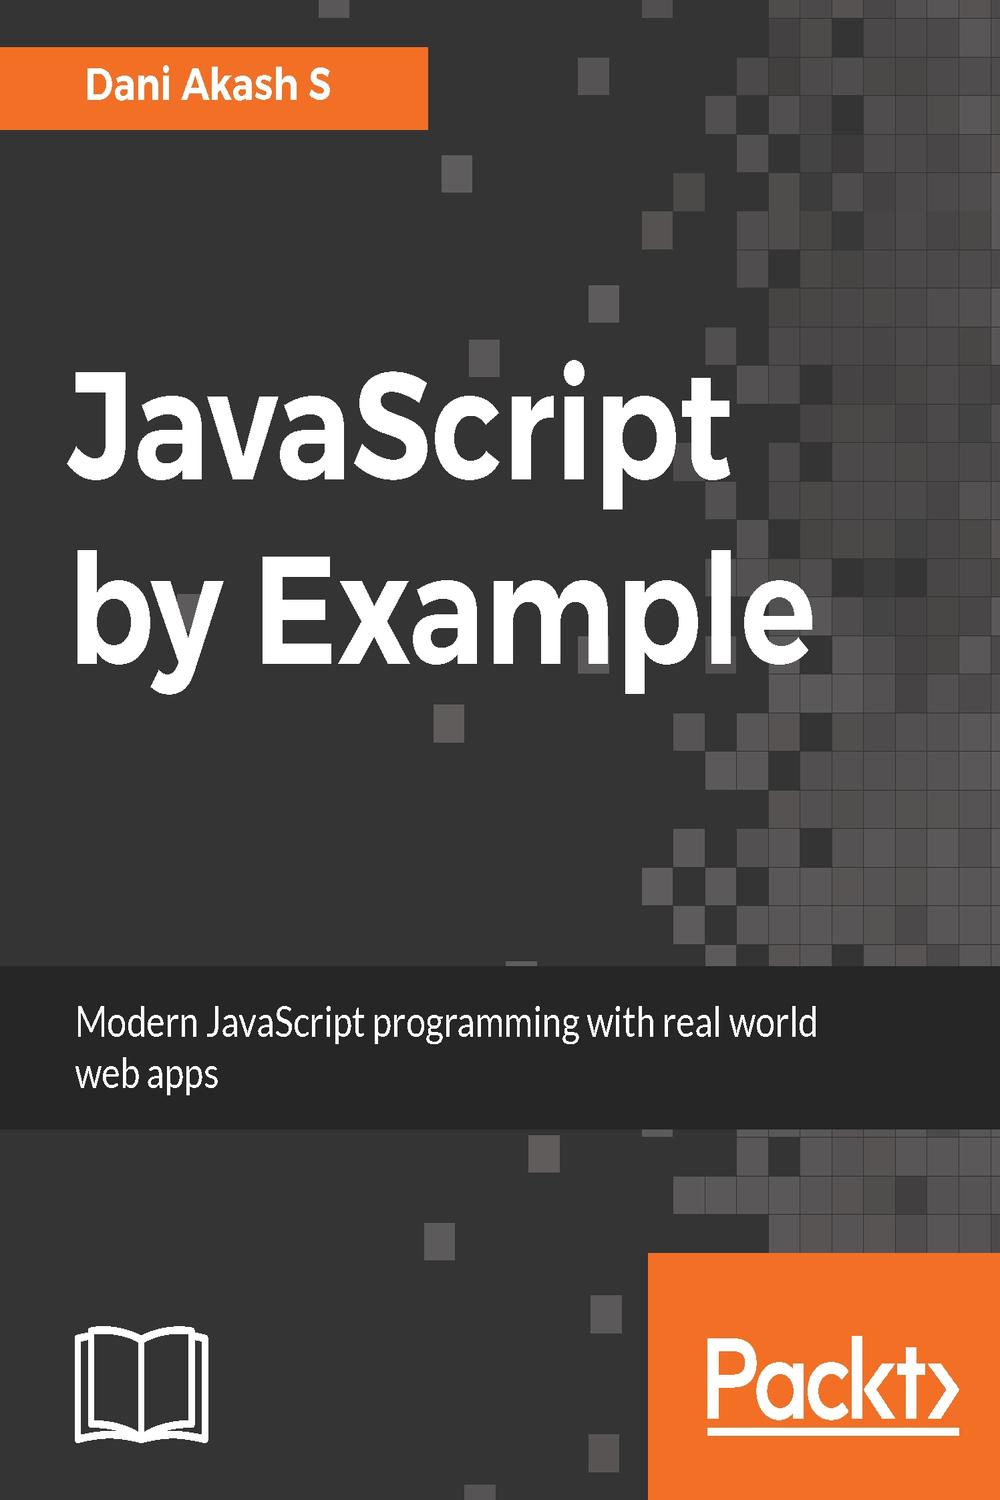 Java script by example.